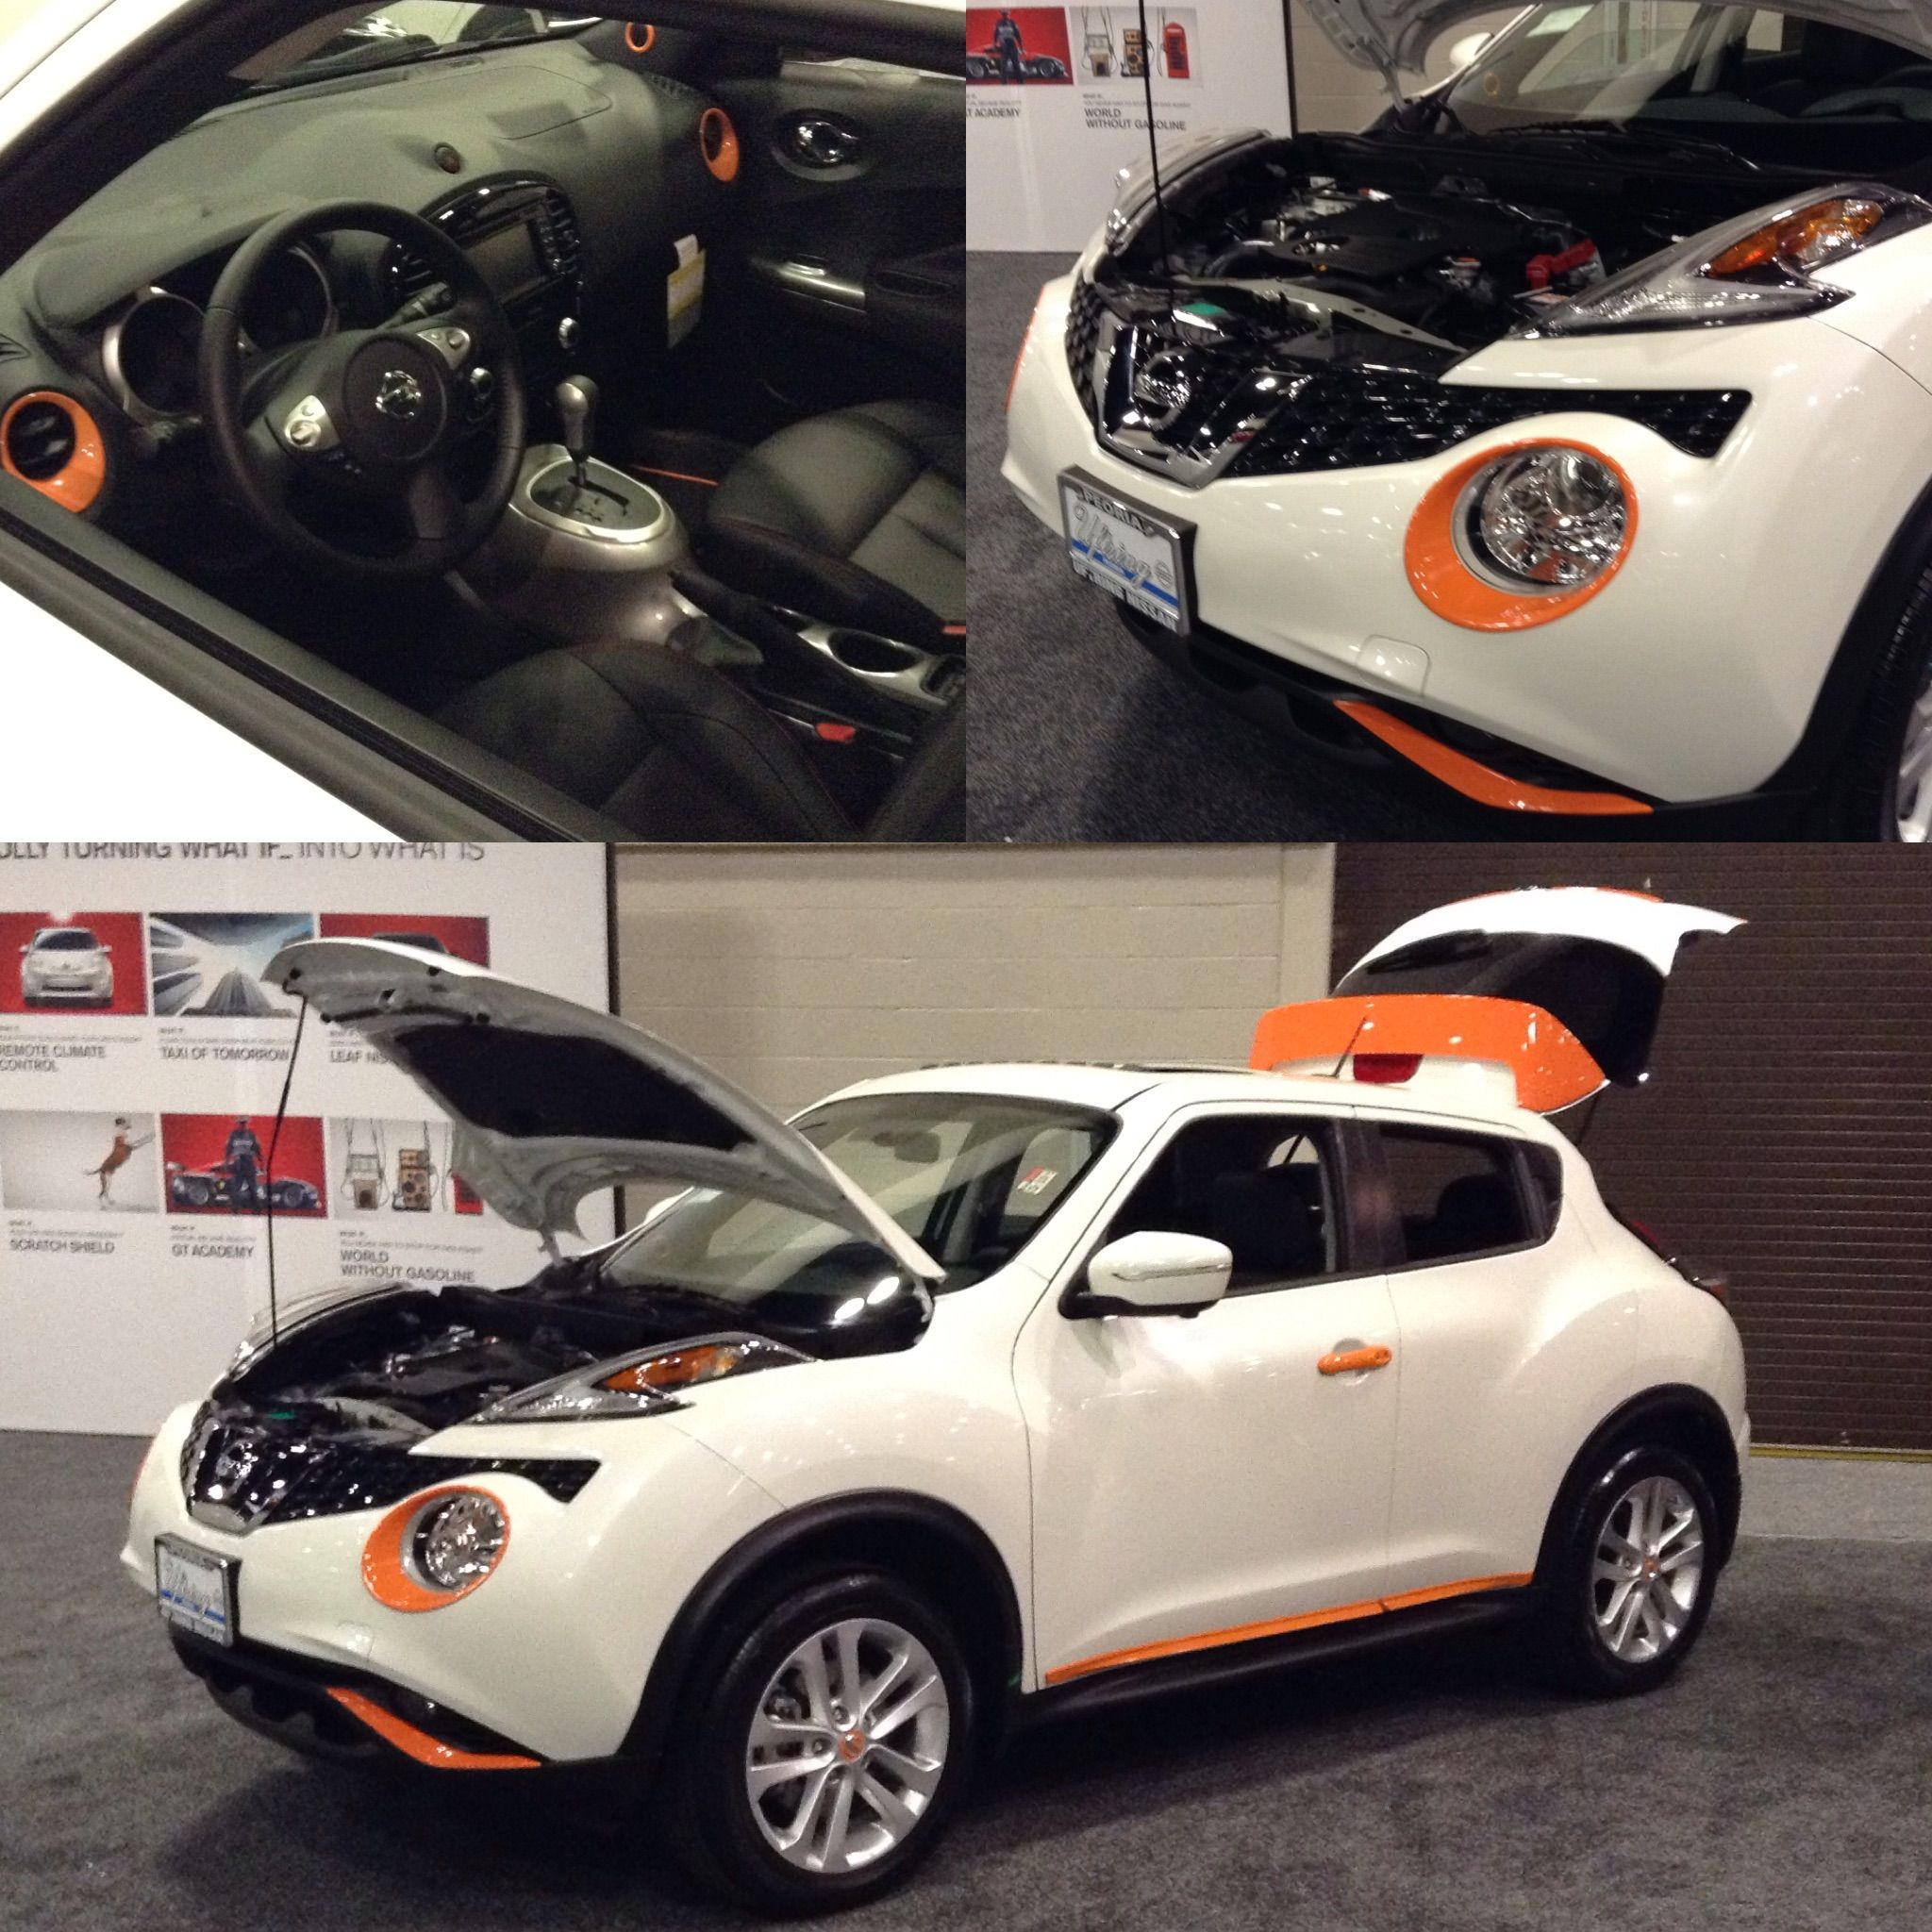 The New 2015 Nissan Juke Color Studio Lets You Choose Any Color